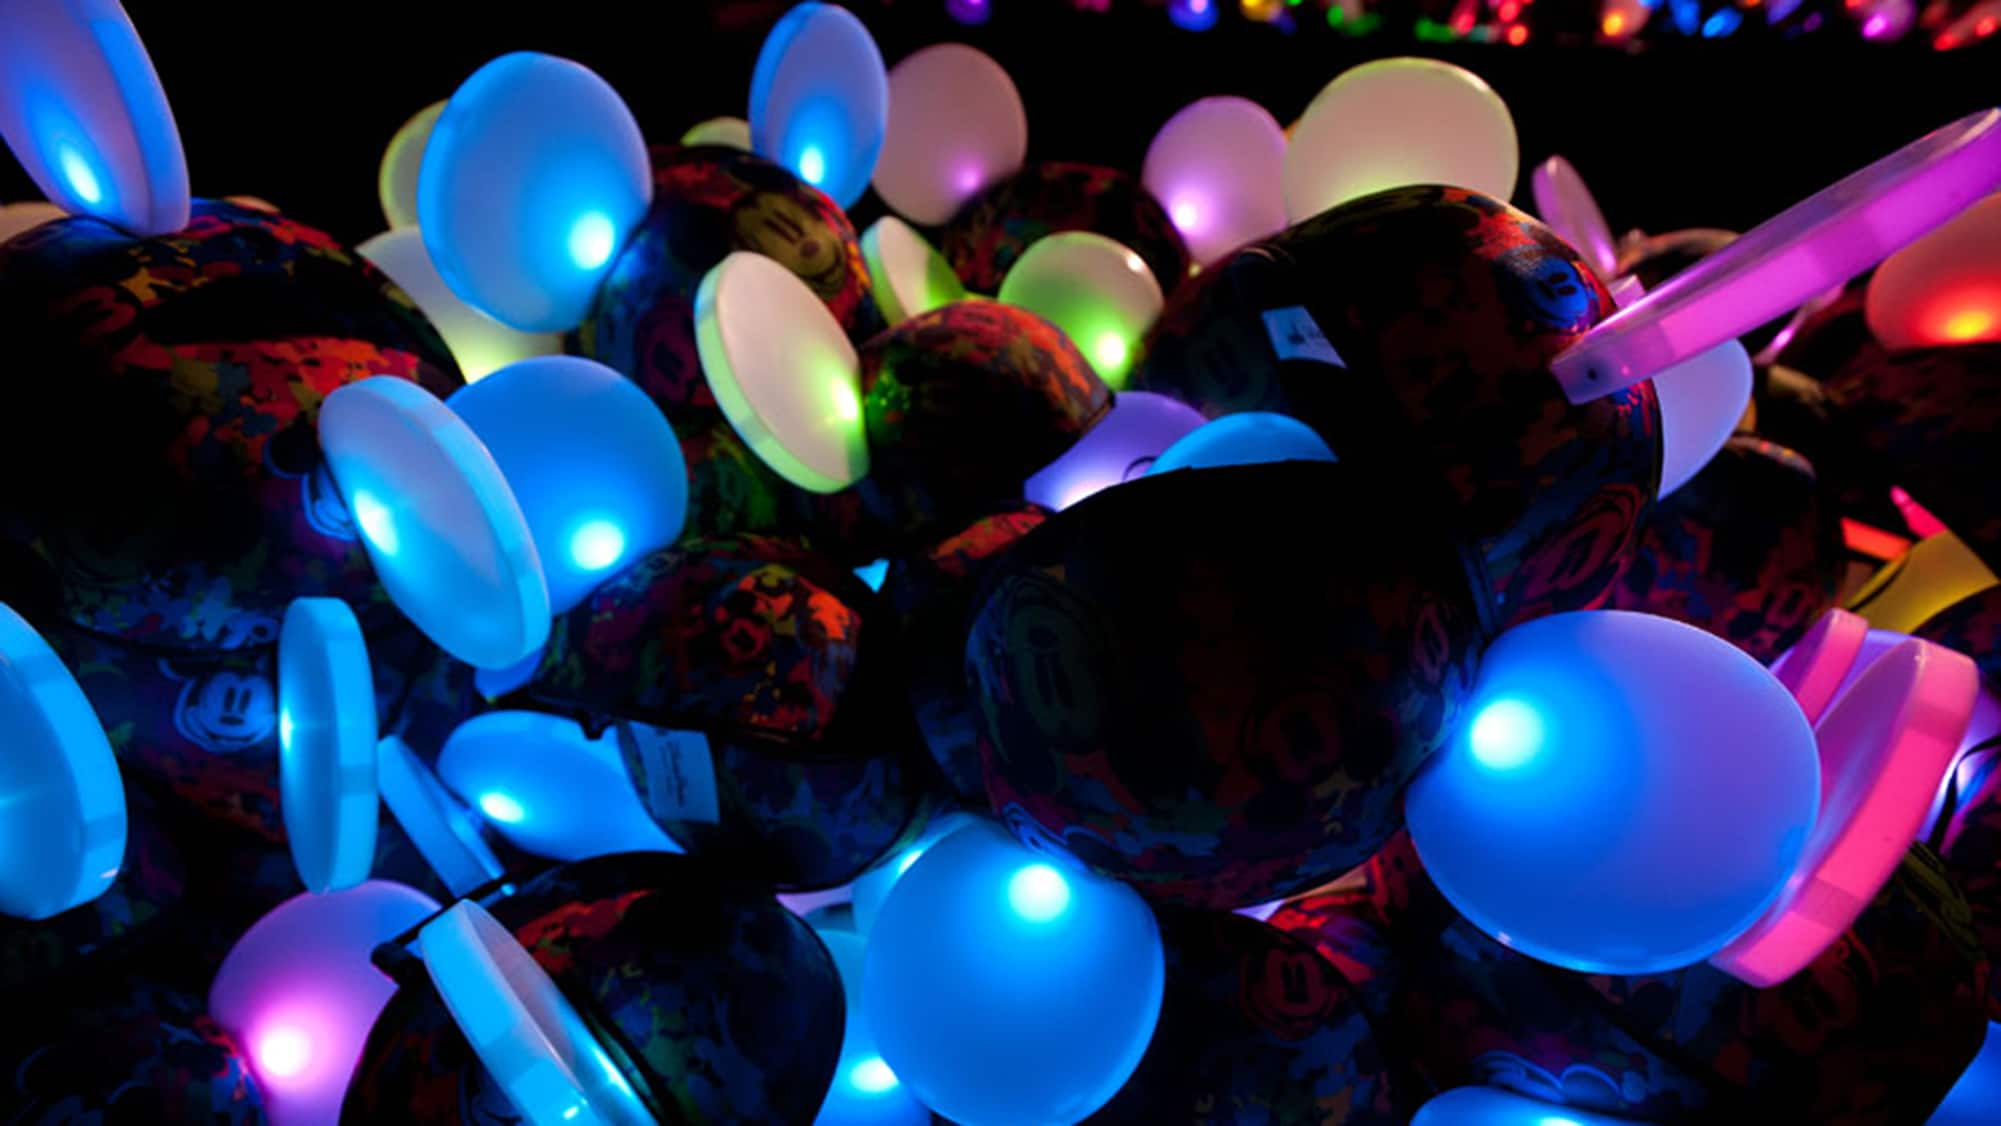 a20c9adc8b2 Glowing Mickey Ears light up as they sit piled together at night